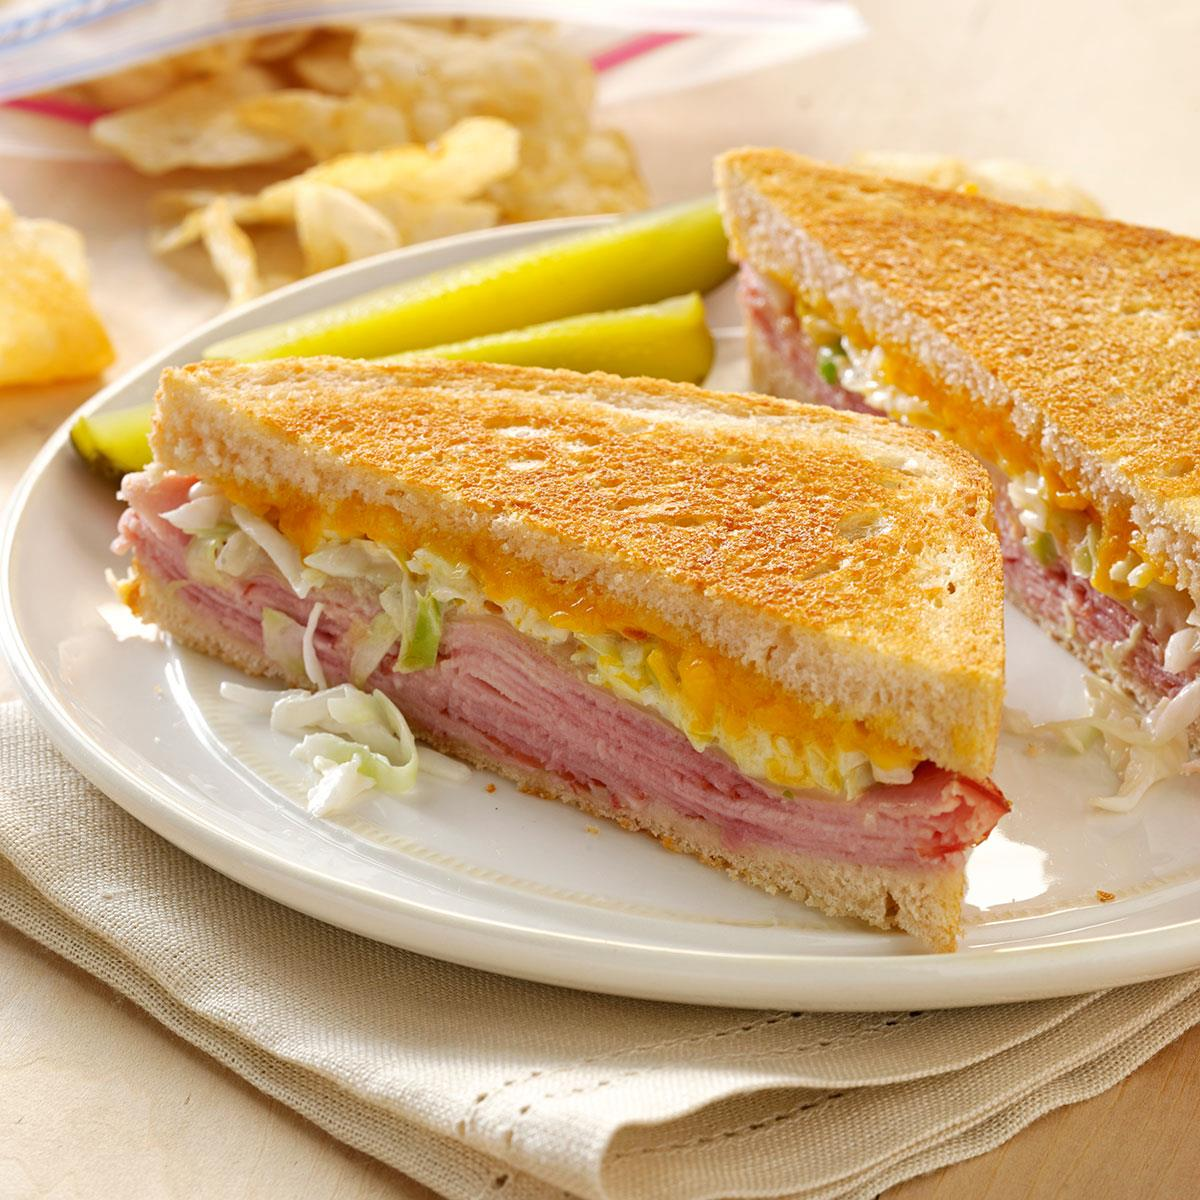 Zesty Grilled Sandwiches Recipe How To Make It Taste Of Home